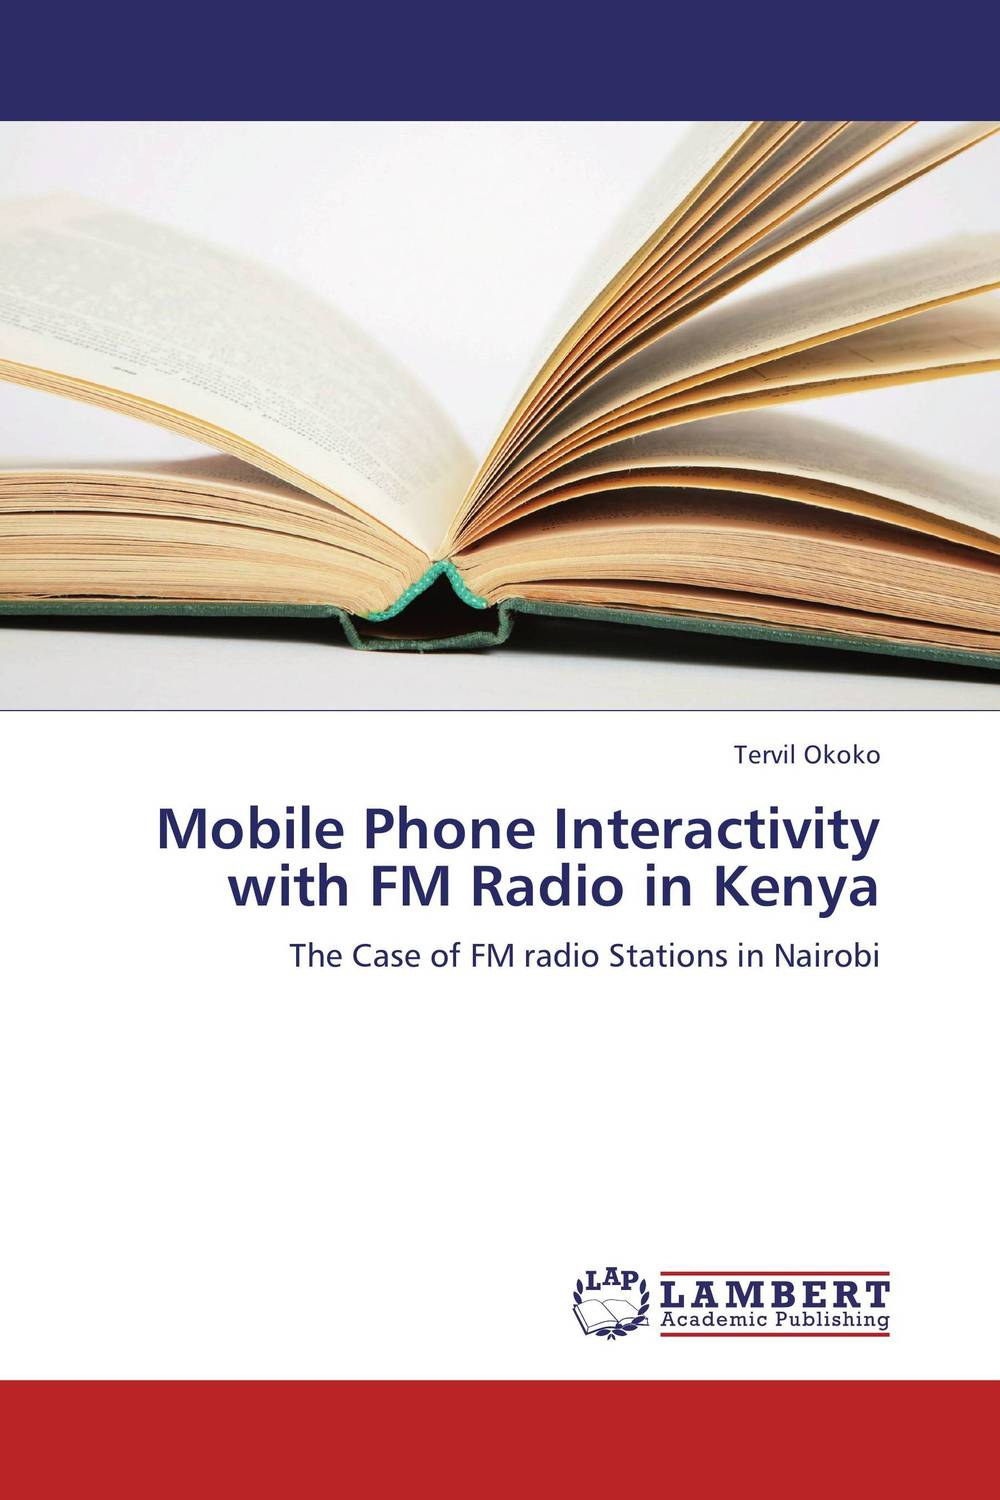 Mobile Phone Interactivity with FM Radio in Kenya